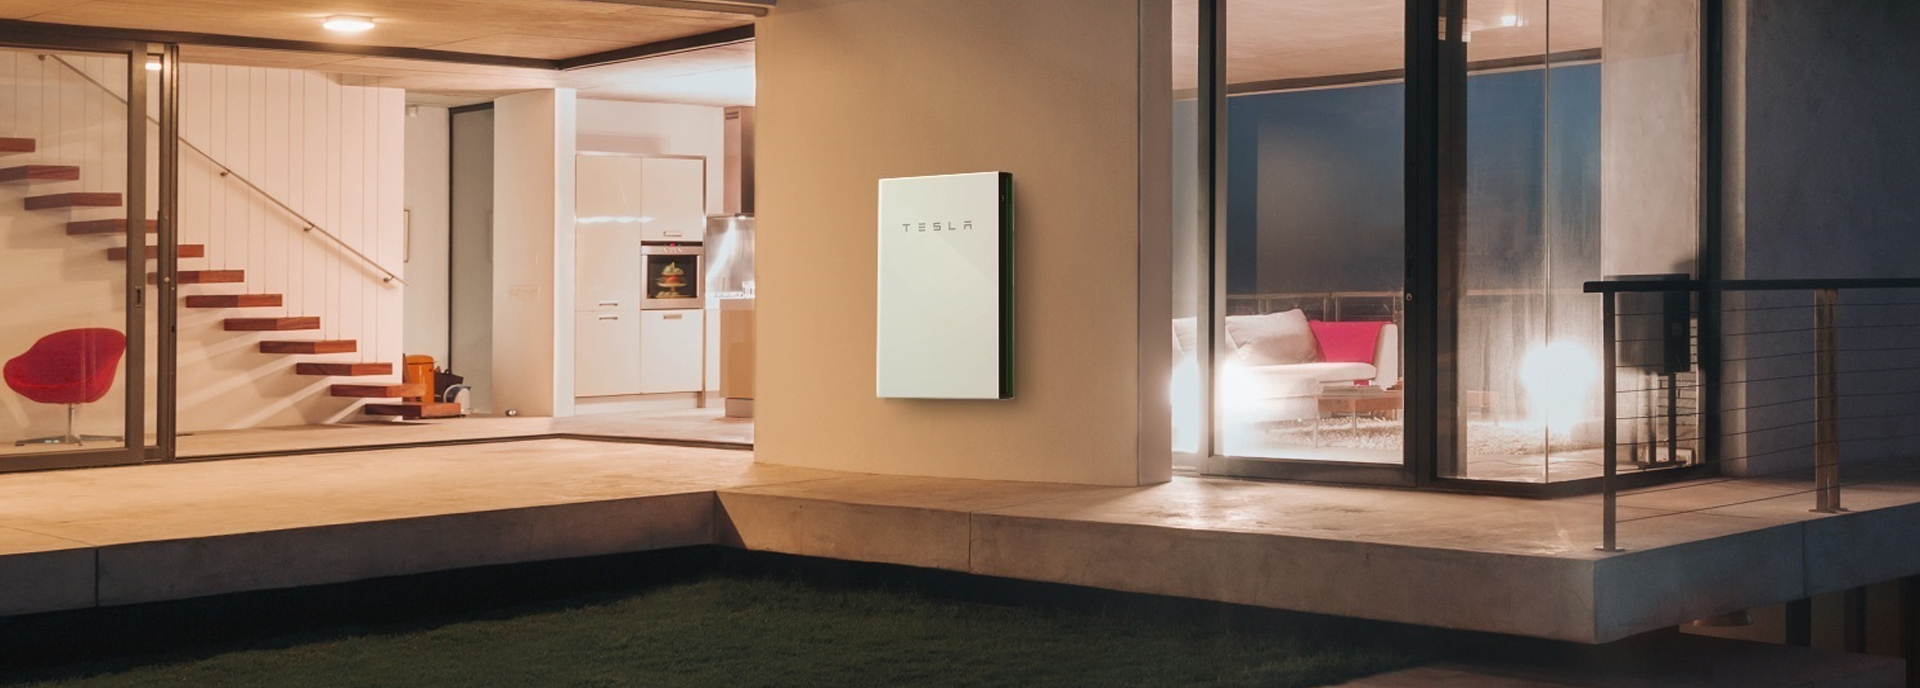 Home Battery - Tesla Powerwall Installers